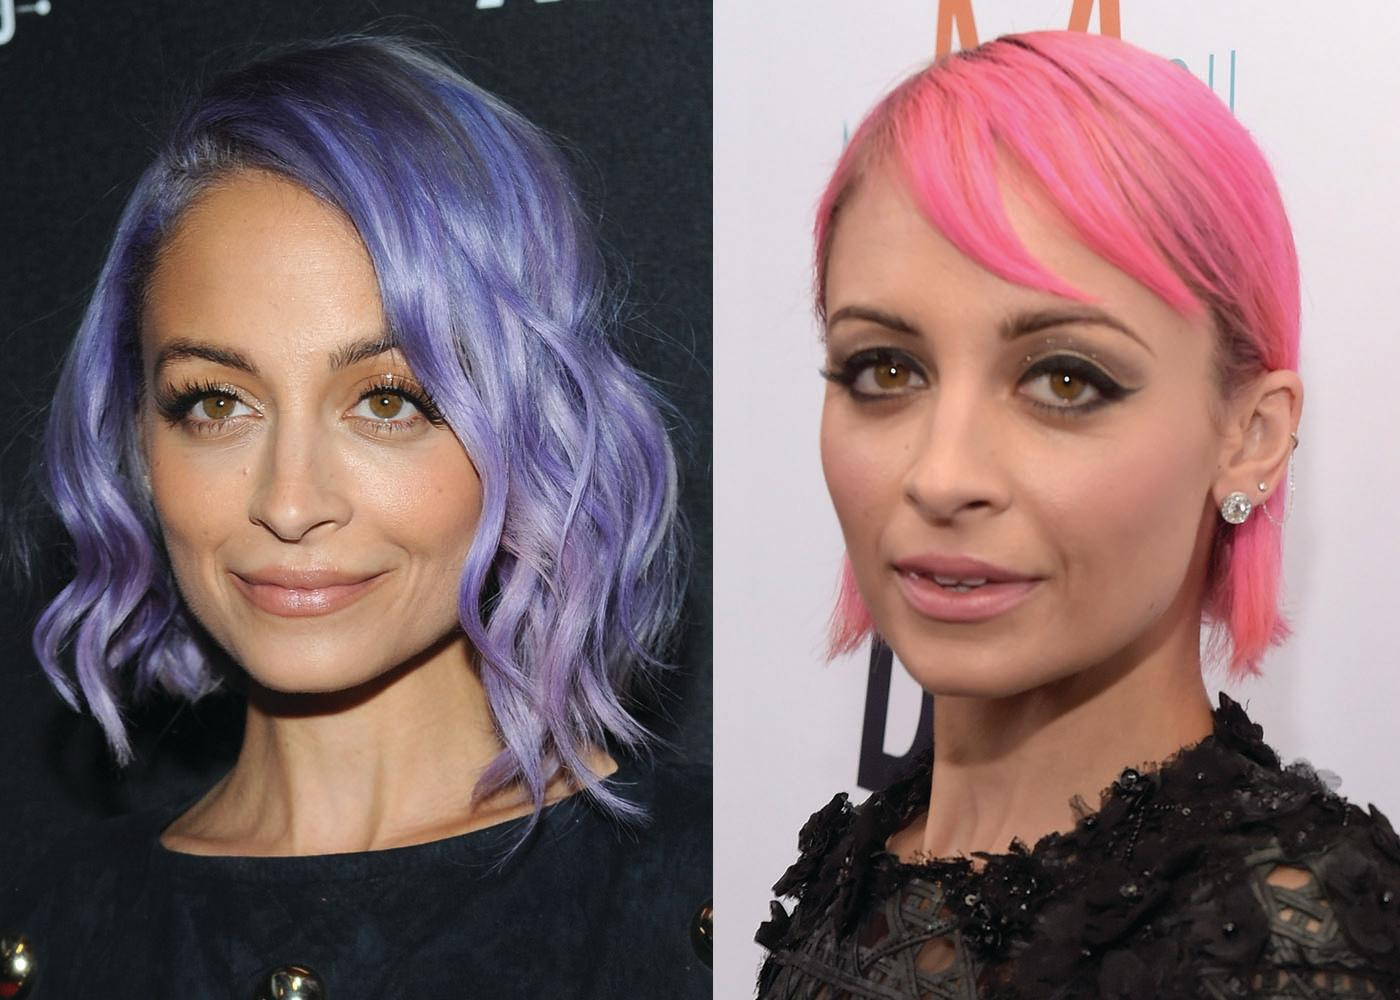 Nicole Richie is no stranger to rainbow-colored hair, as she's worn purple and pink hues. (Photo: Getty Images)